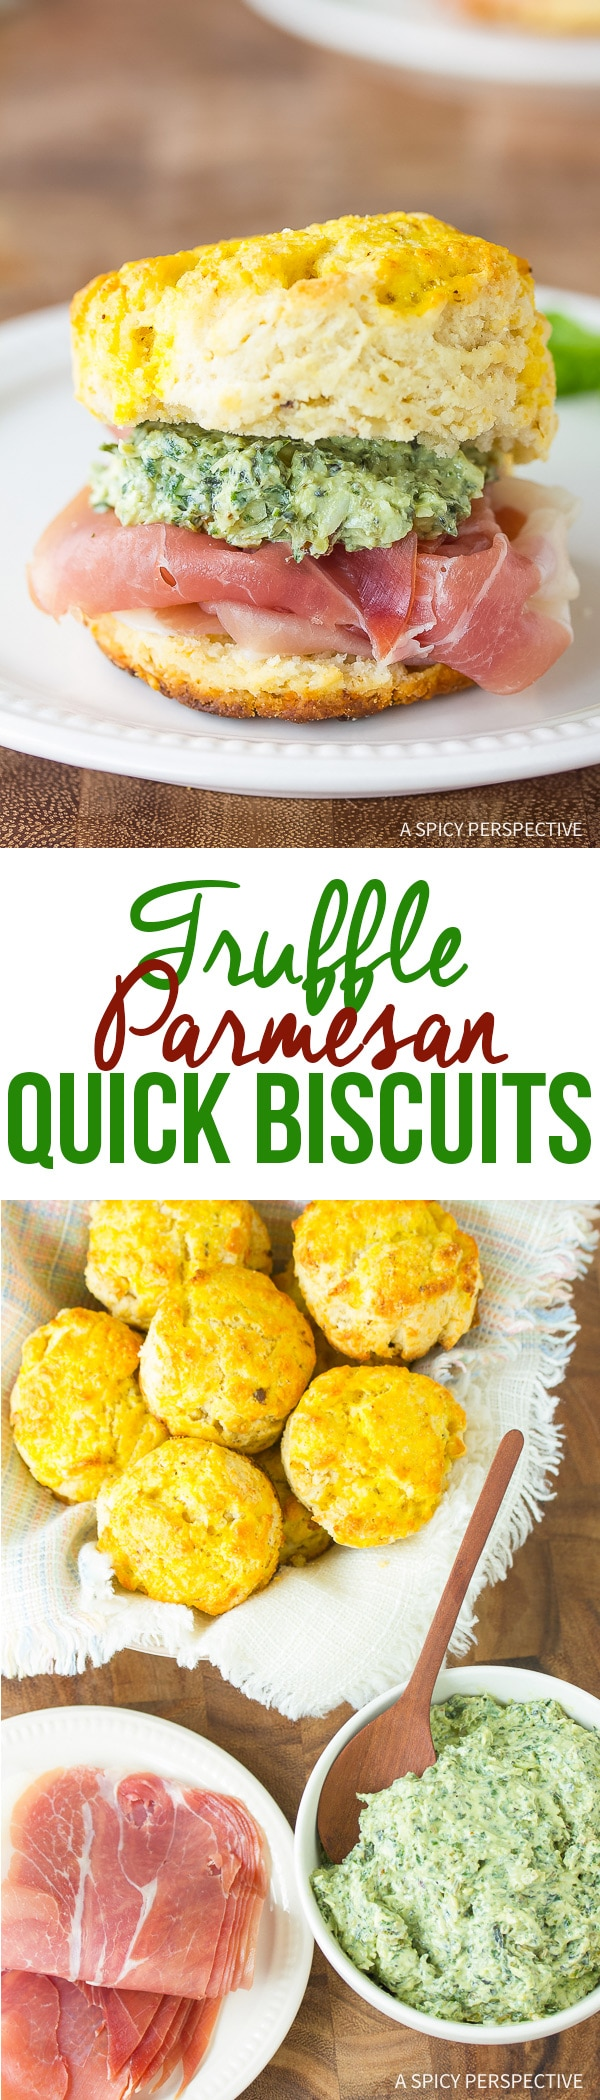 Easy Truffle Parmesan Quick Biscuit Recipe